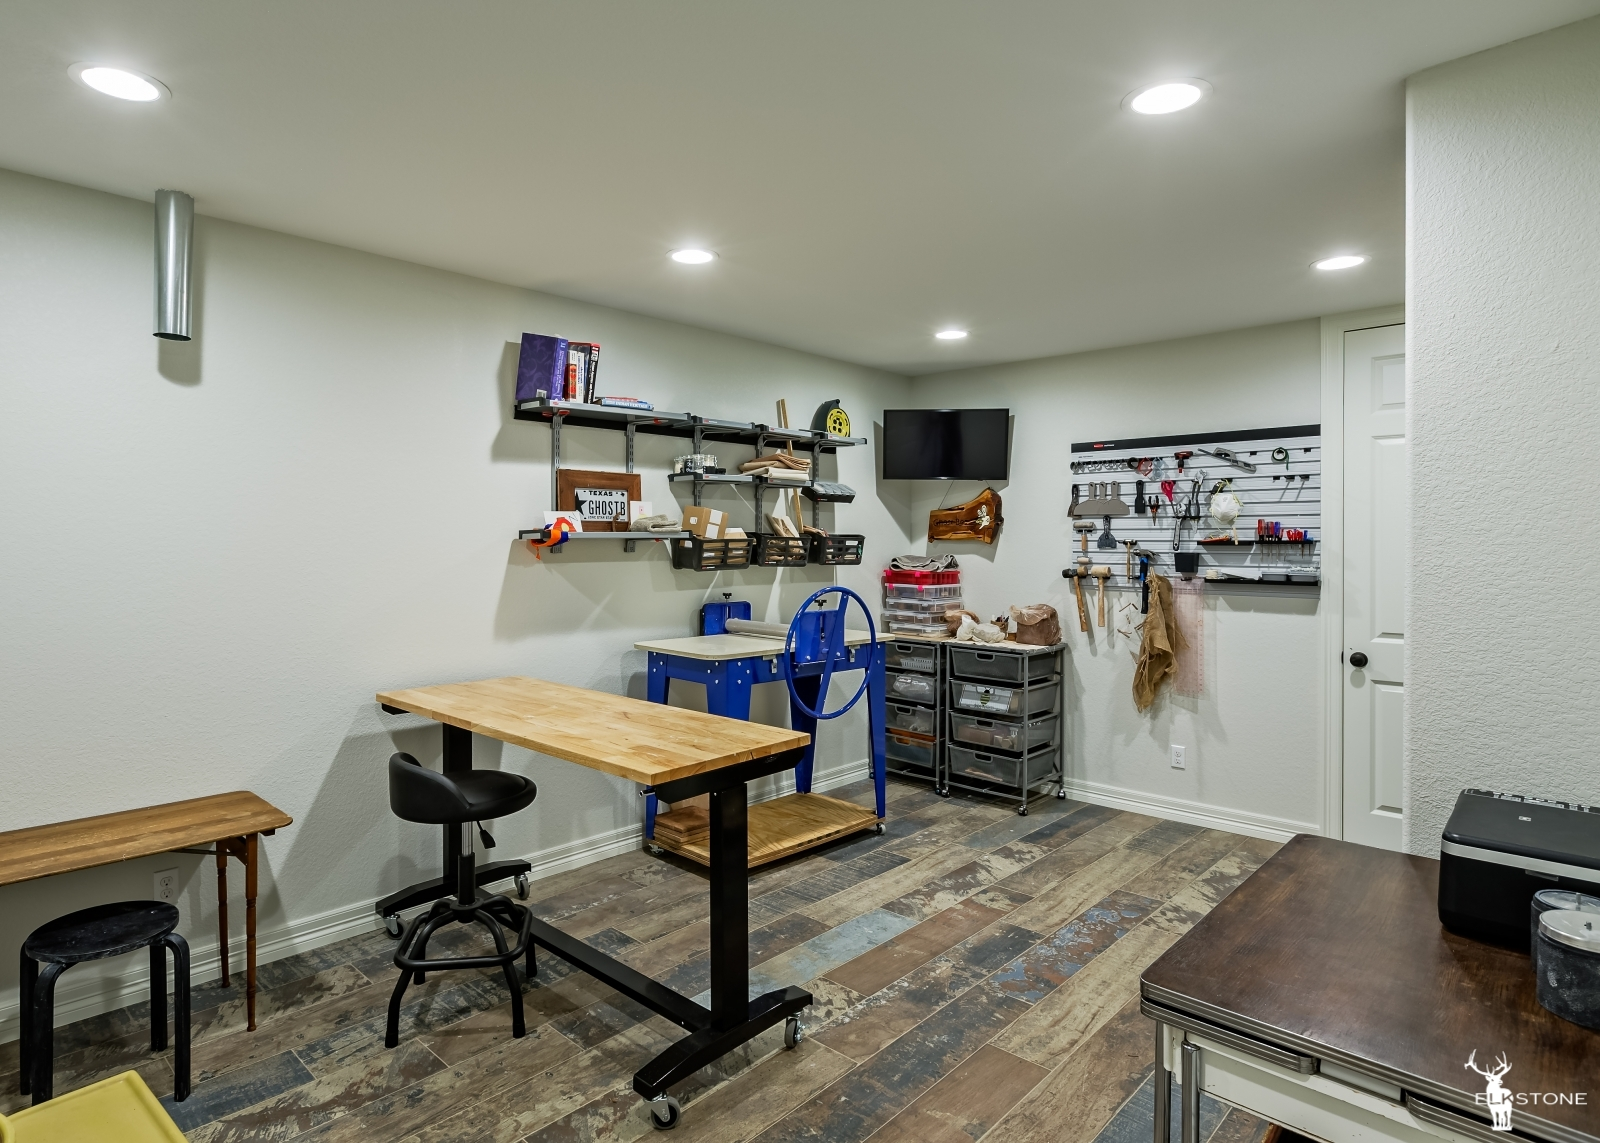 3044ElkCanyon-Hobby-craft room-01